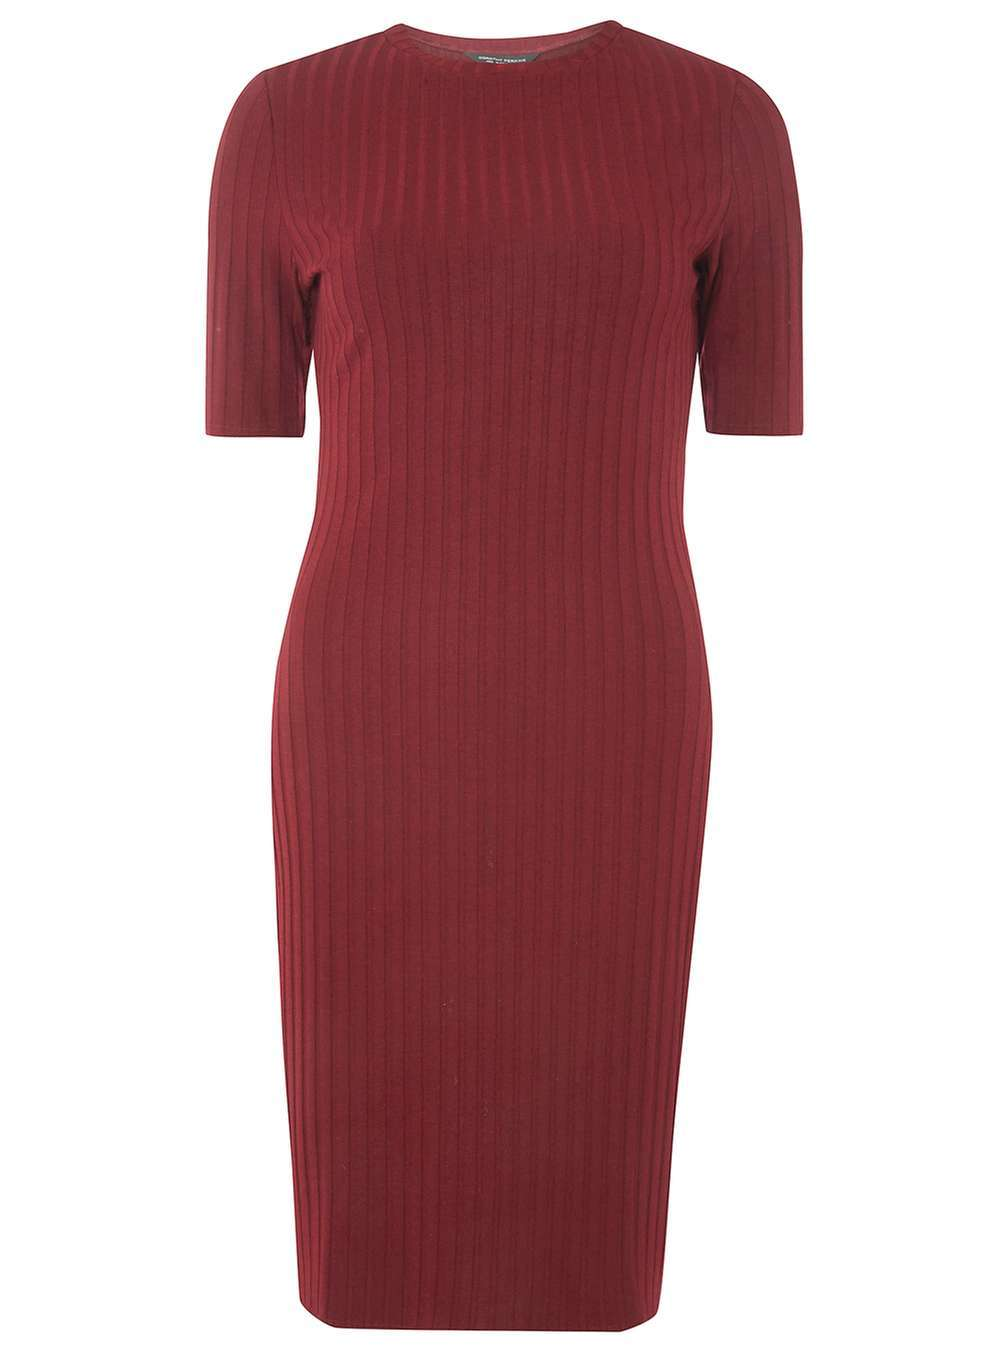 Womens Red Rib Bodycon Dress Red - length: mid thigh; fit: tight; pattern: plain; style: bodycon; hip detail: draws attention to hips; predominant colour: burgundy; occasions: evening; fibres: polyester/polyamide - stretch; neckline: crew; sleeve length: short sleeve; sleeve style: standard; texture group: jersey - clingy; pattern type: fabric; season: a/w 2016; wardrobe: event